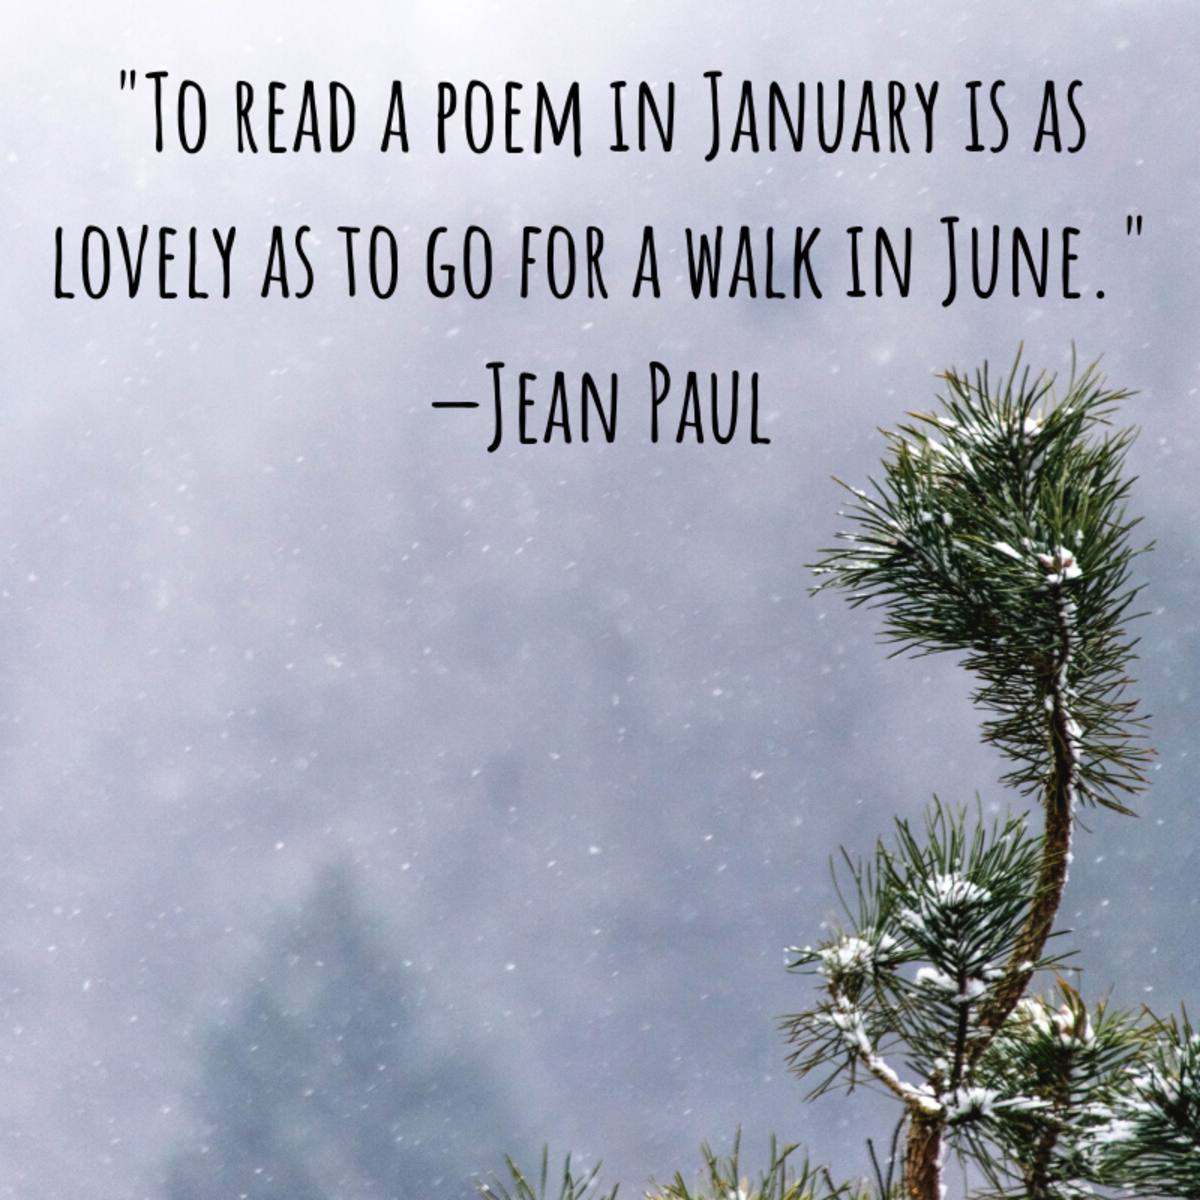 Do you still enjoy spending time in the outdoors during the cold of January?